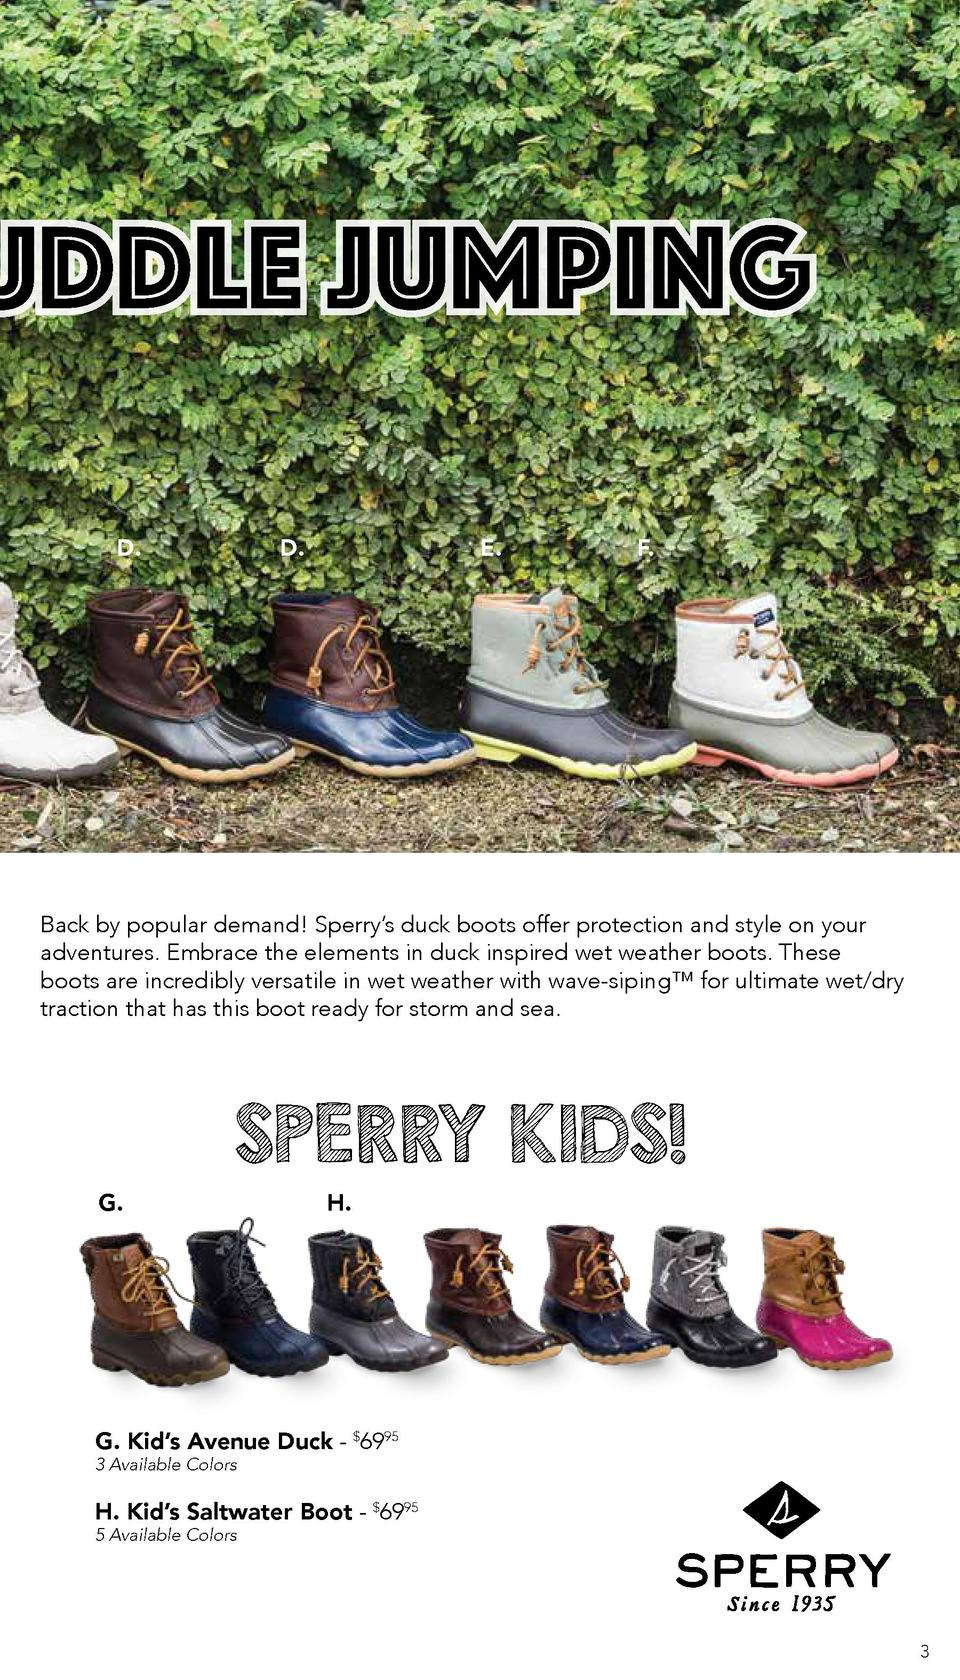 UDDLE JUMPING D.  D.  E.  F.  Back by popular demand  Sperry   s duck boots offer protection and style on your adventures....